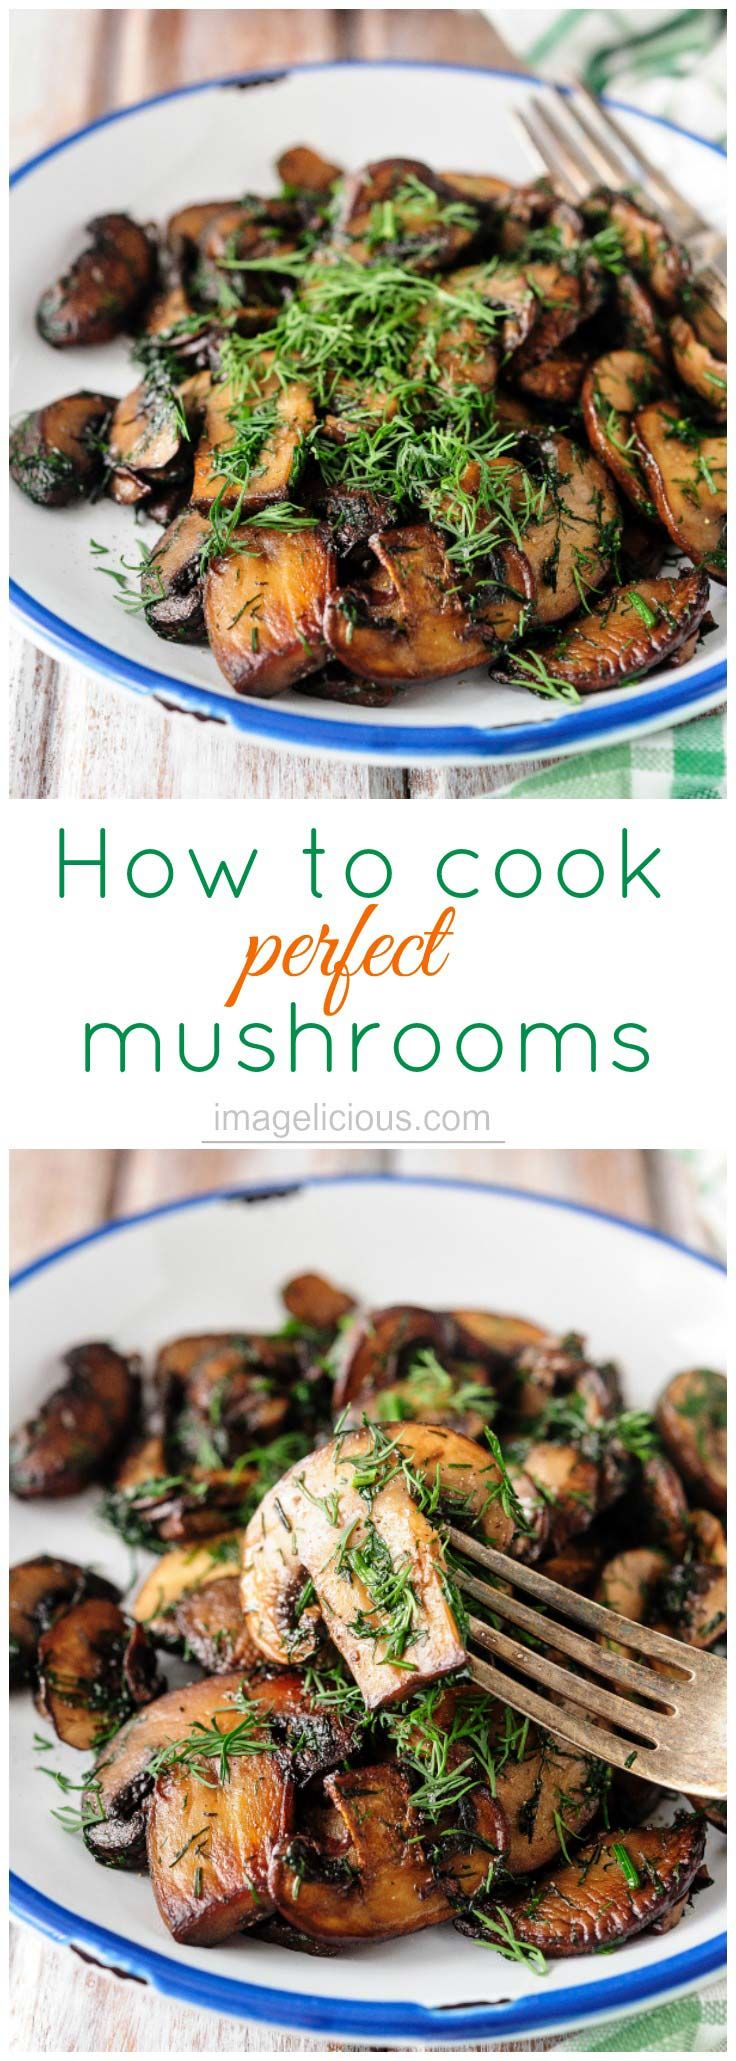 How to cook perfect mushrooms every time - use these tips to cook delicious golden mushrooms without any fuss   Imagelicious